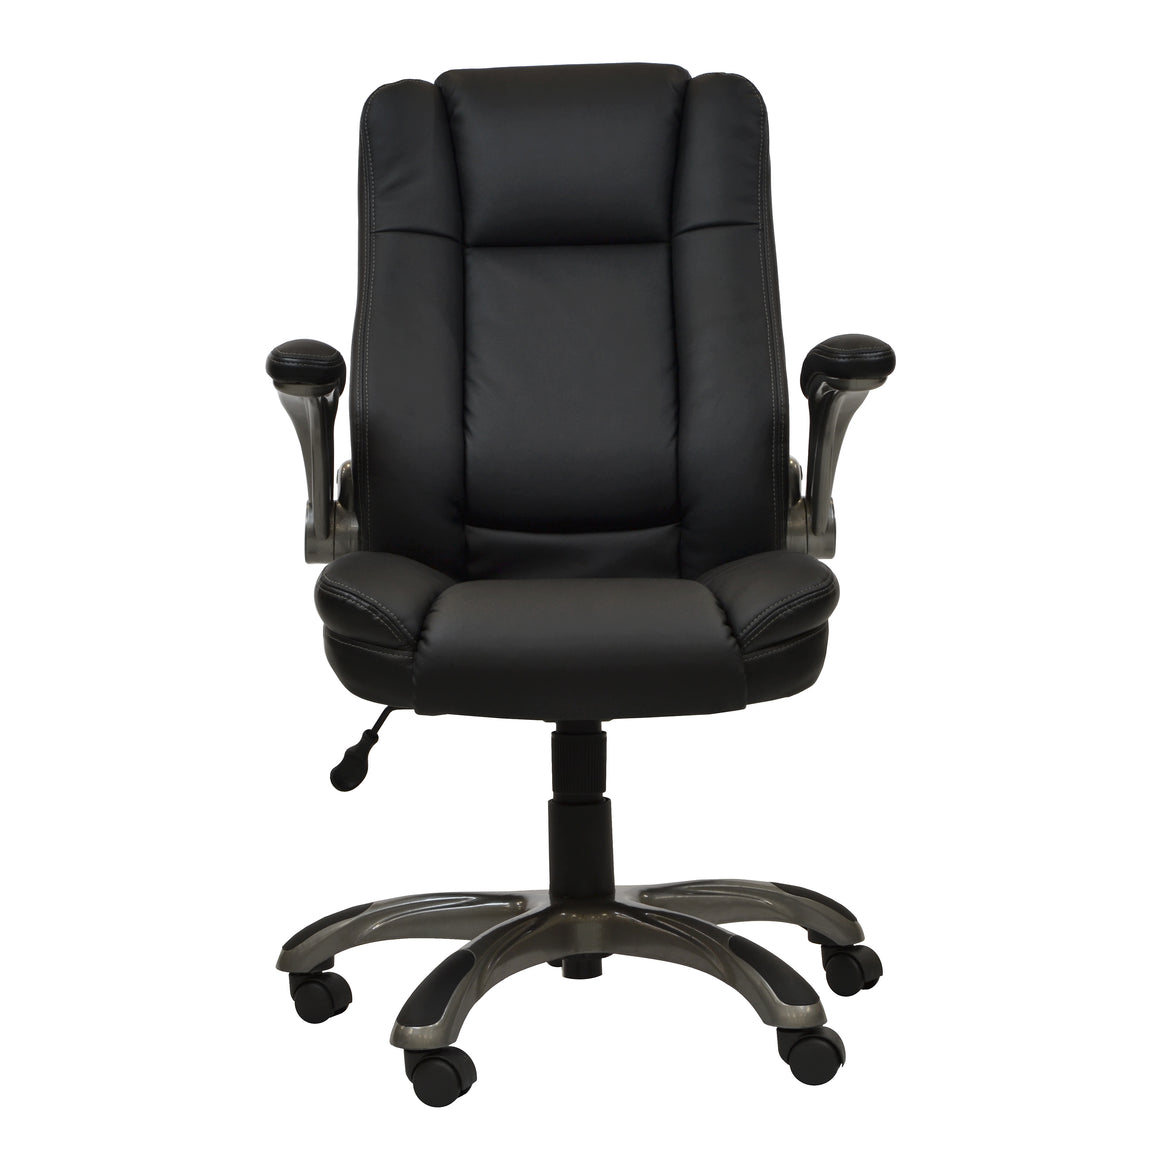 Medium Back Executive Office Chair with Flip-up Arms